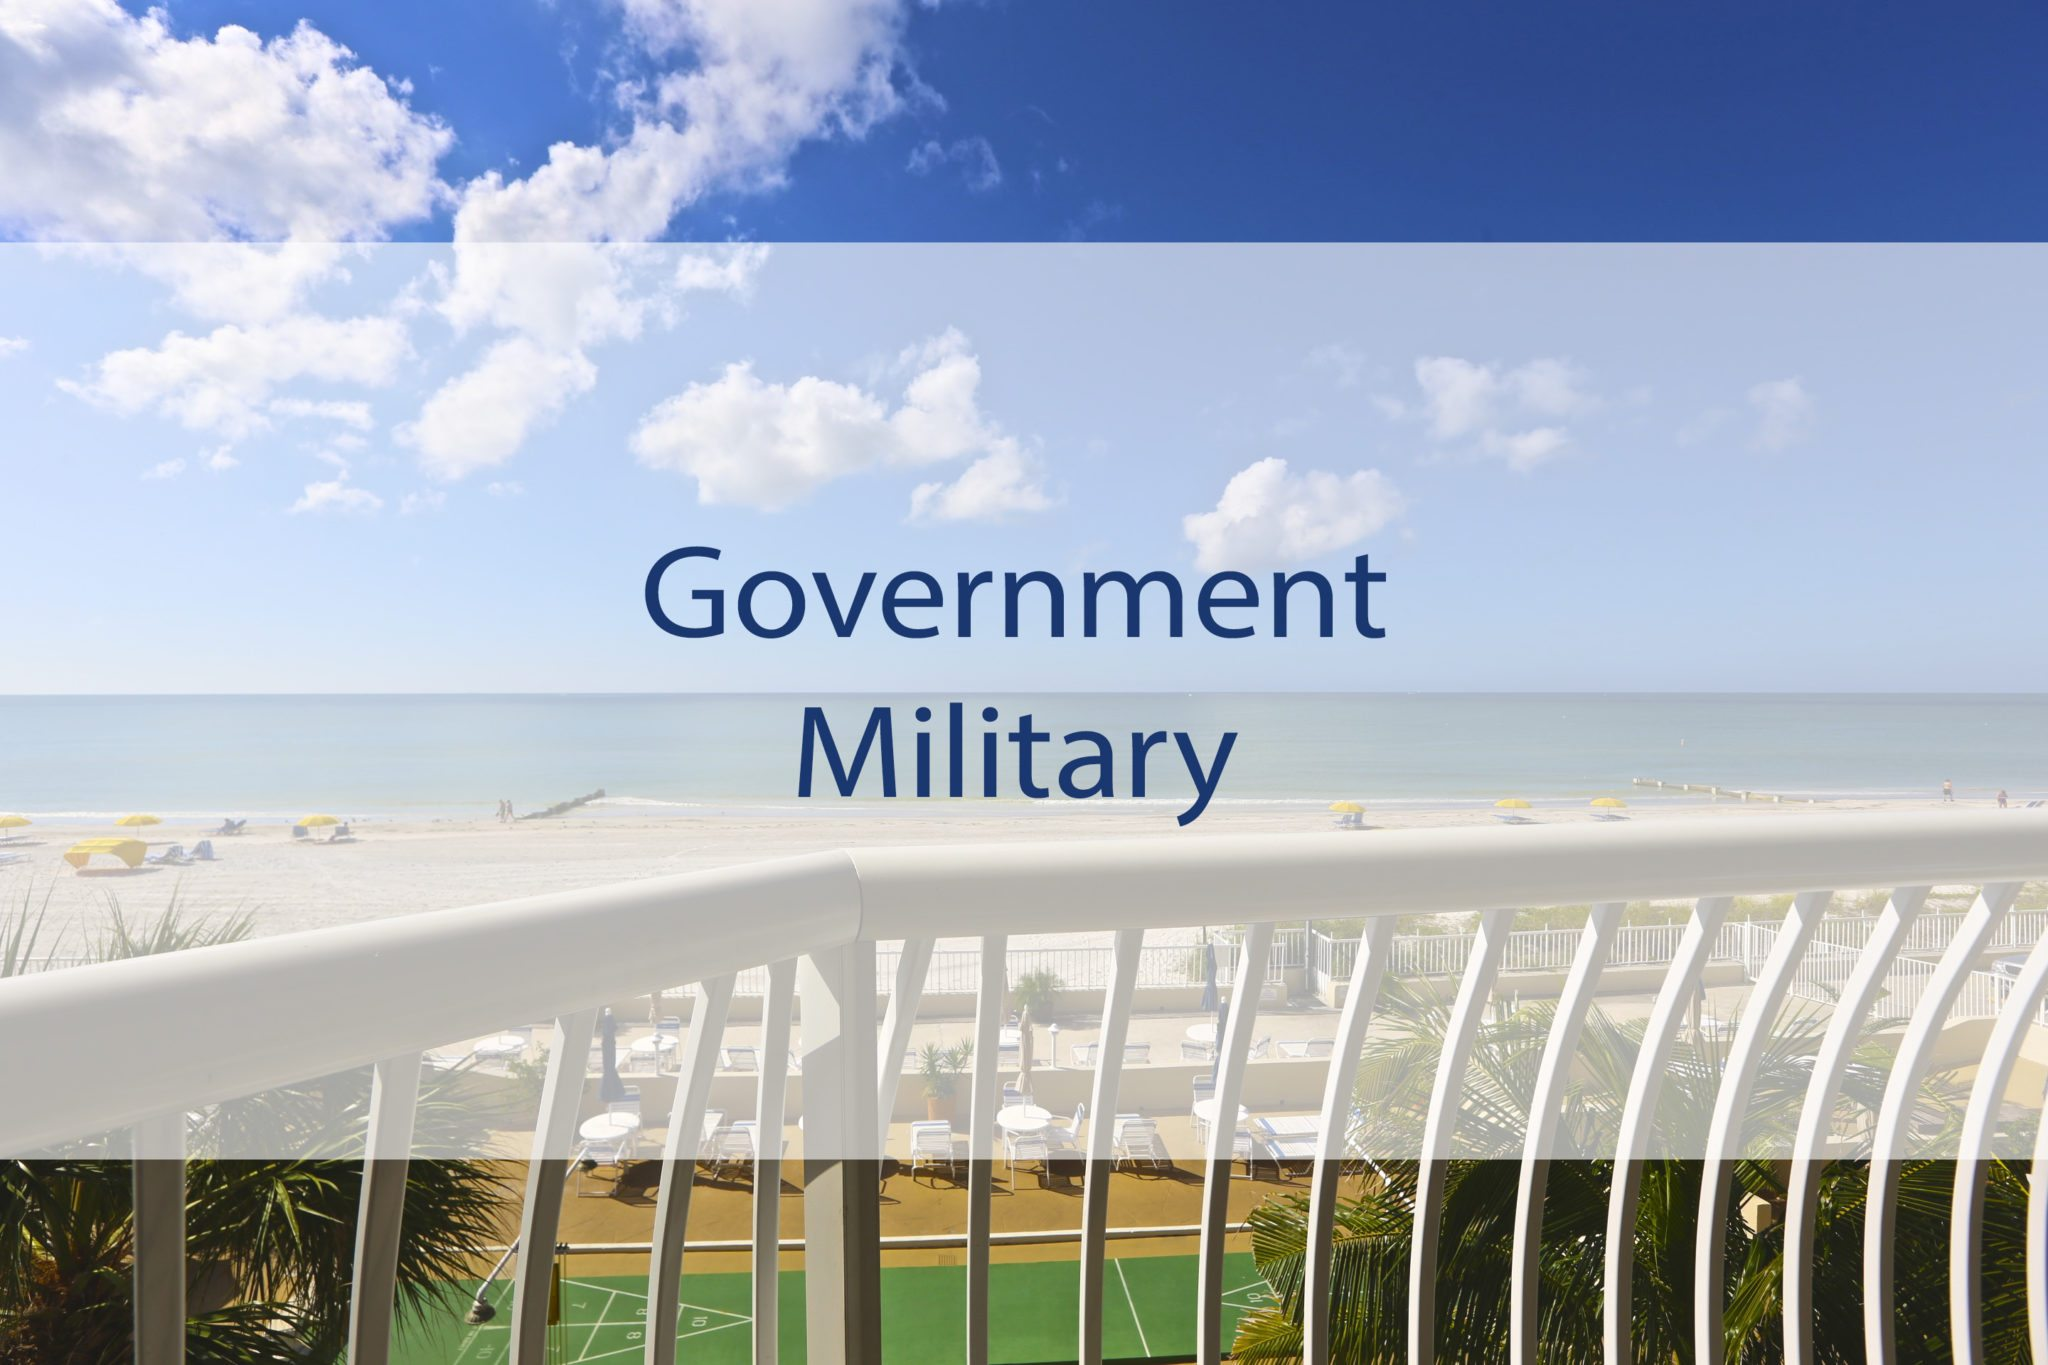 Government / Military